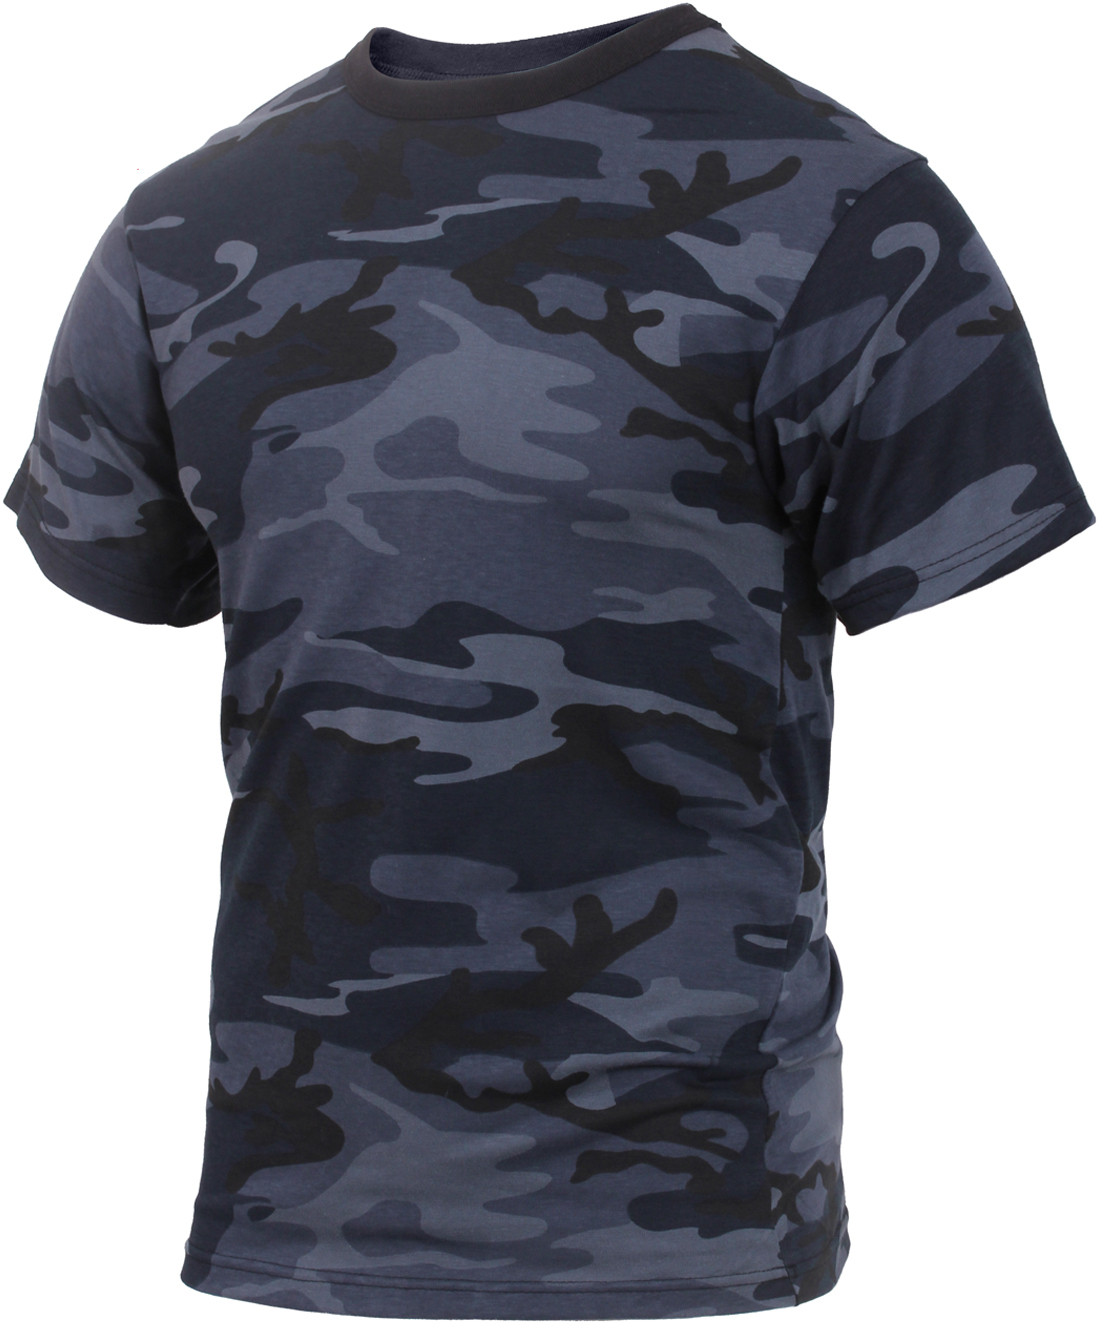 More Views. Midnight Blue Camouflage Military Short Sleeve T-Shirt 0f16e0048fa